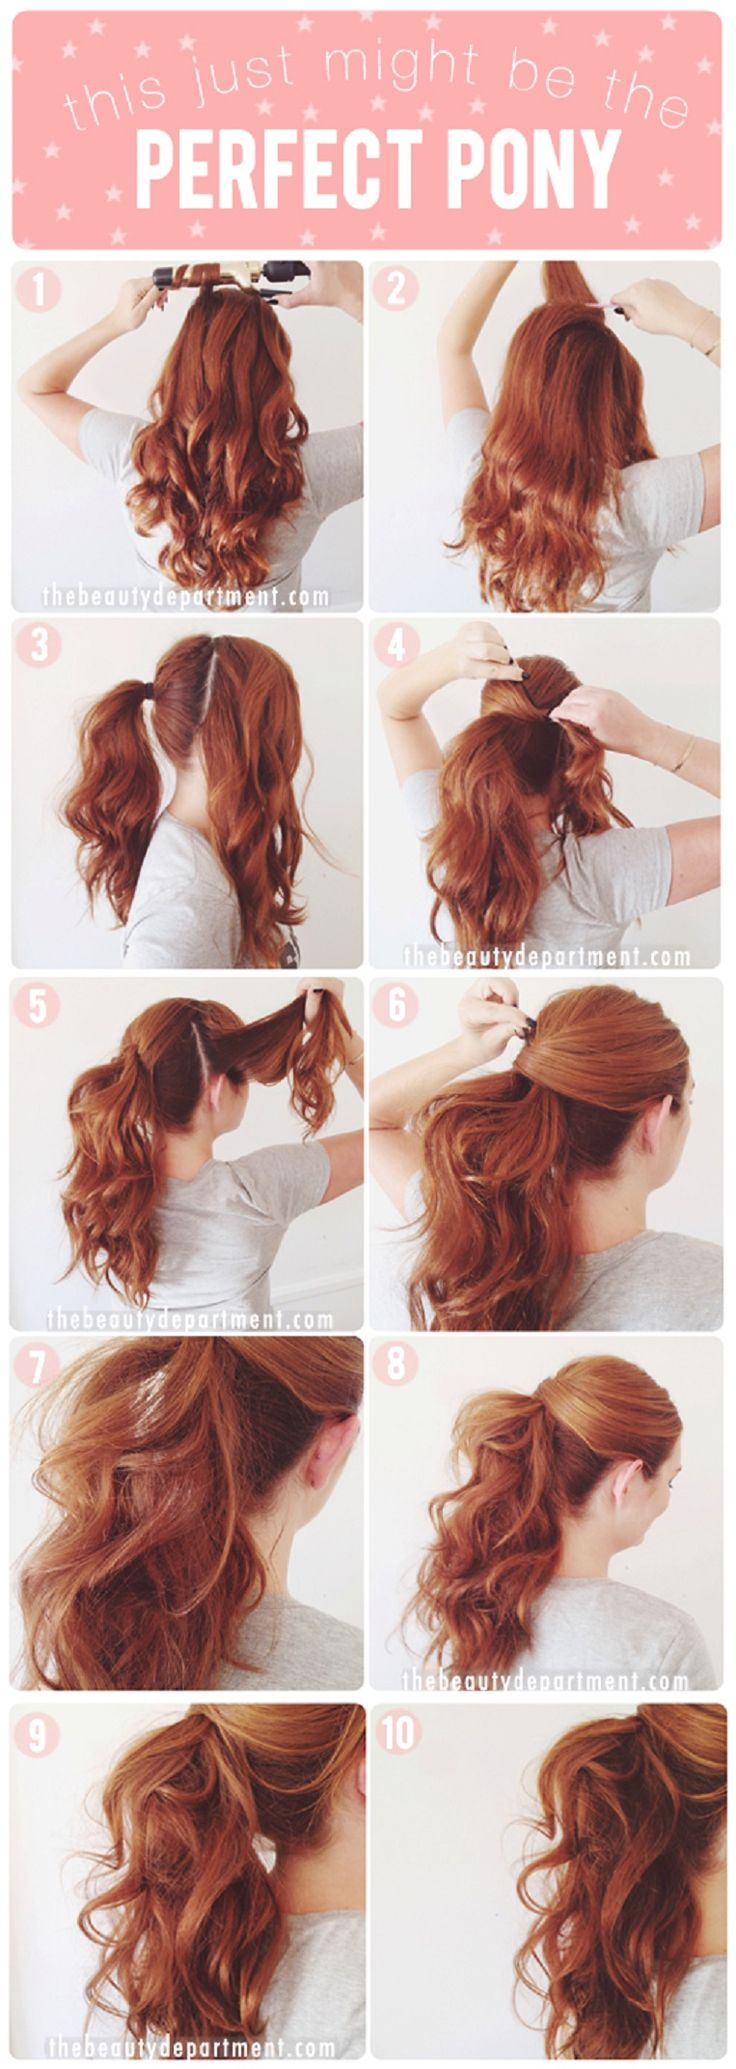 Sensational 1000 Ideas About Cute Ponytail Hairstyles On Pinterest Cute Short Hairstyles For Black Women Fulllsitofus